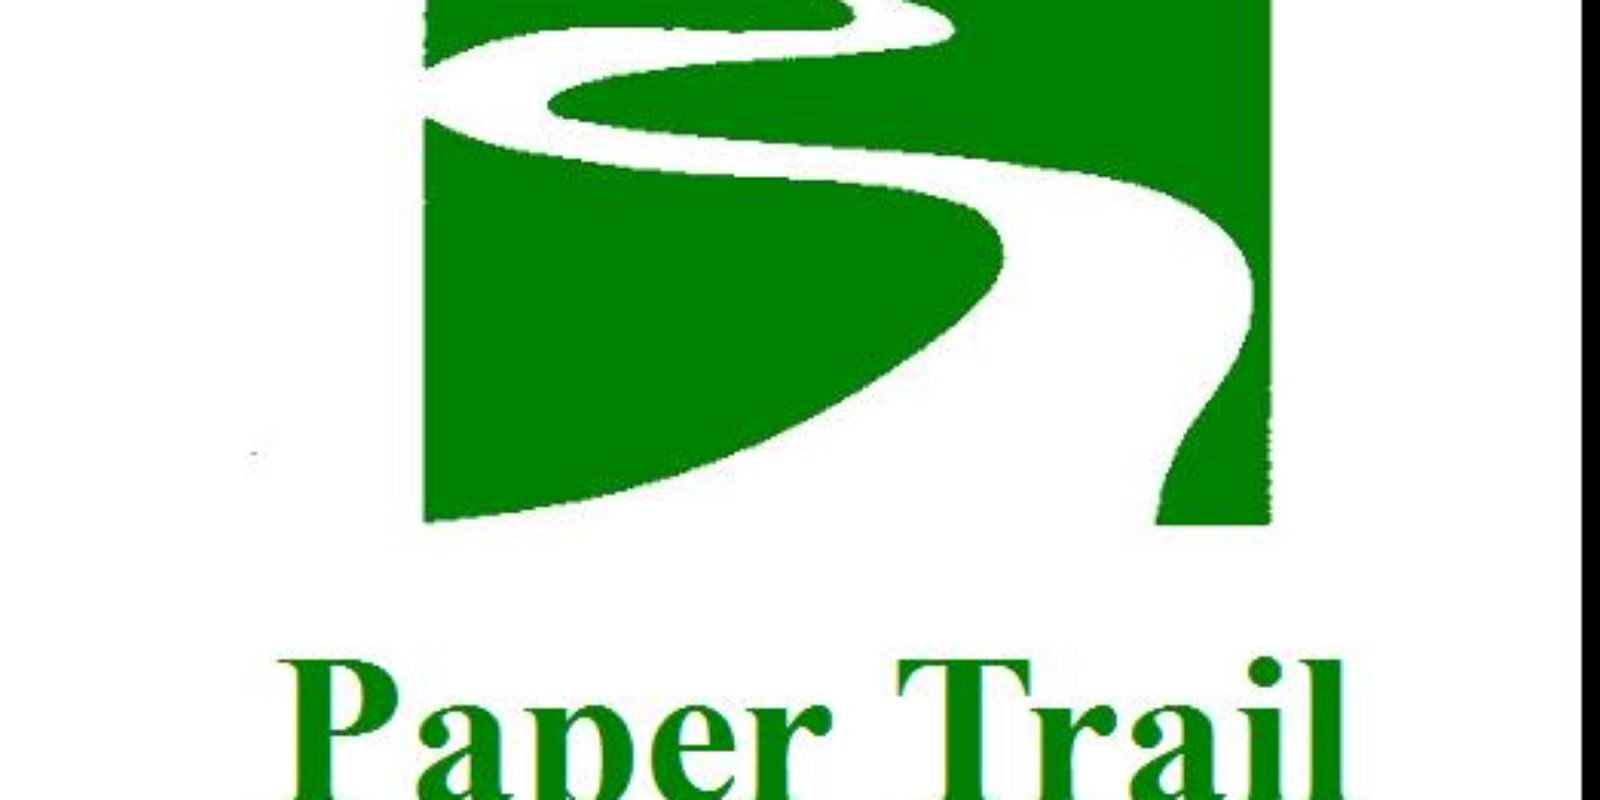 Trail June opens 2